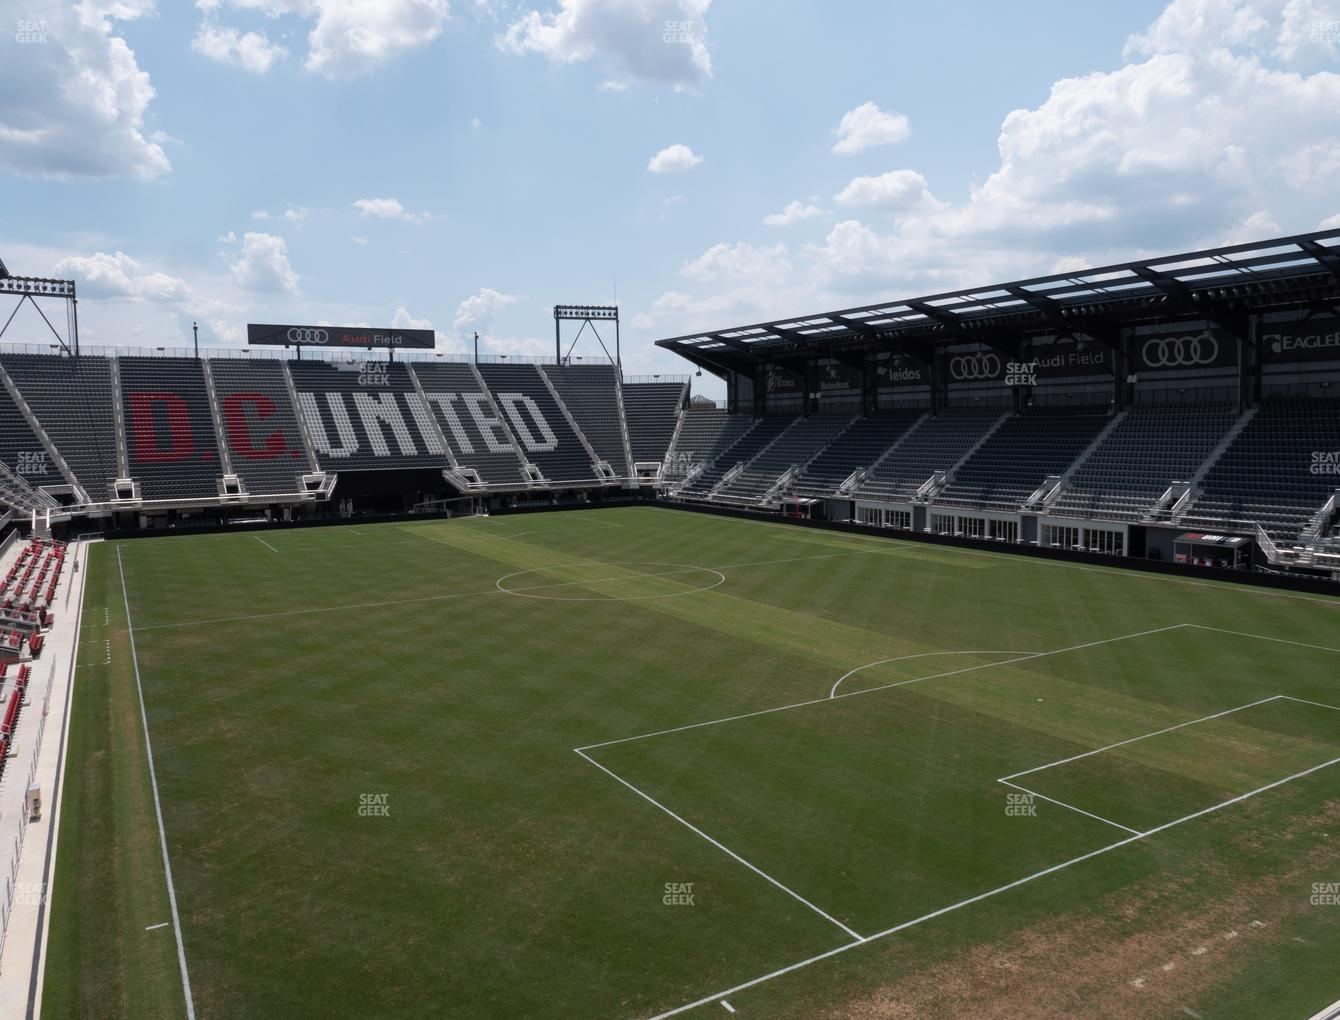 D.C. United at Audi Field Rooftop Bar View